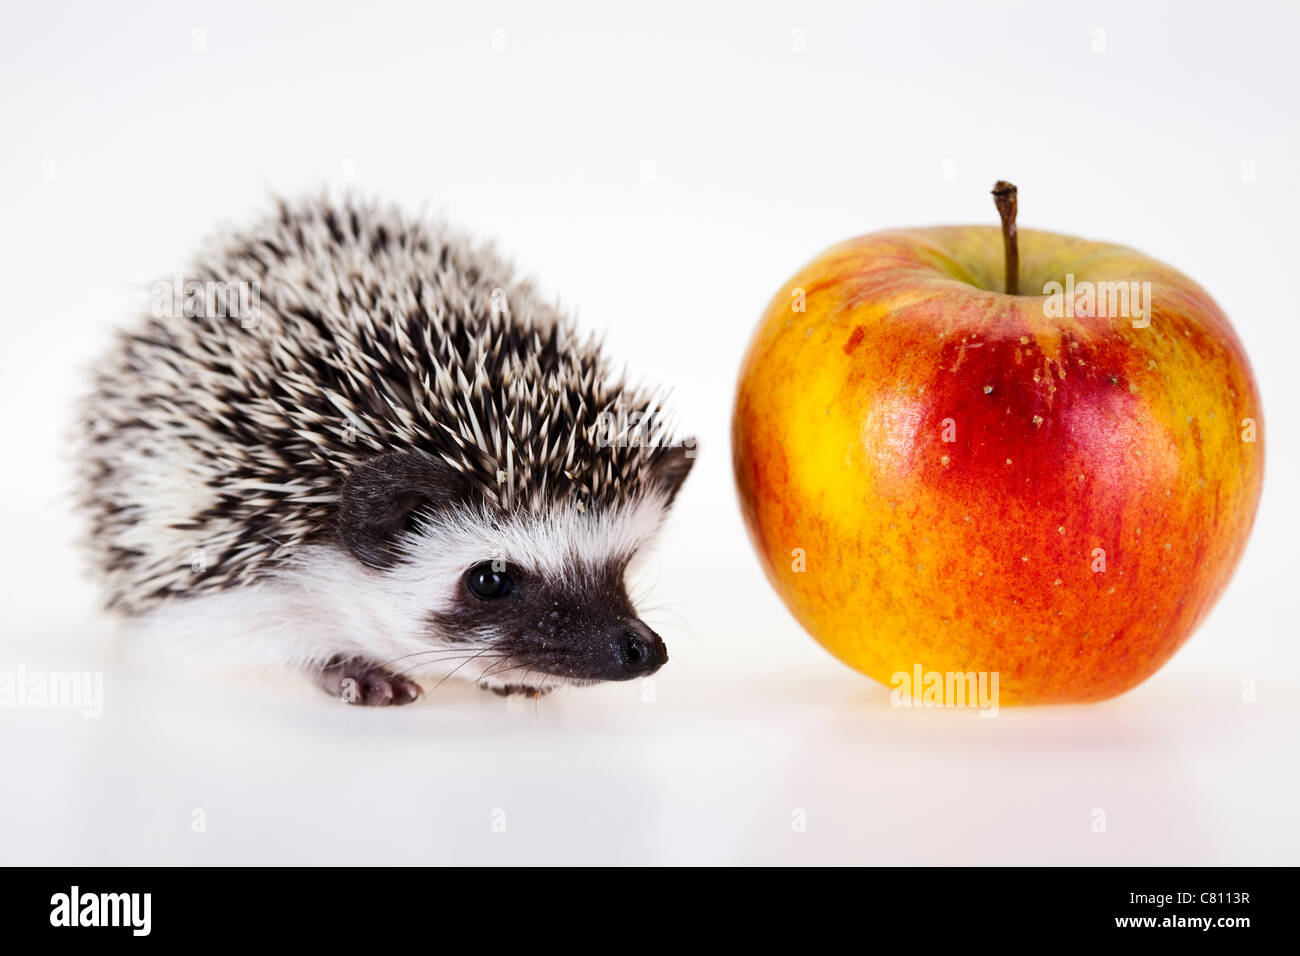 Hedgehog with apple - Stock Image